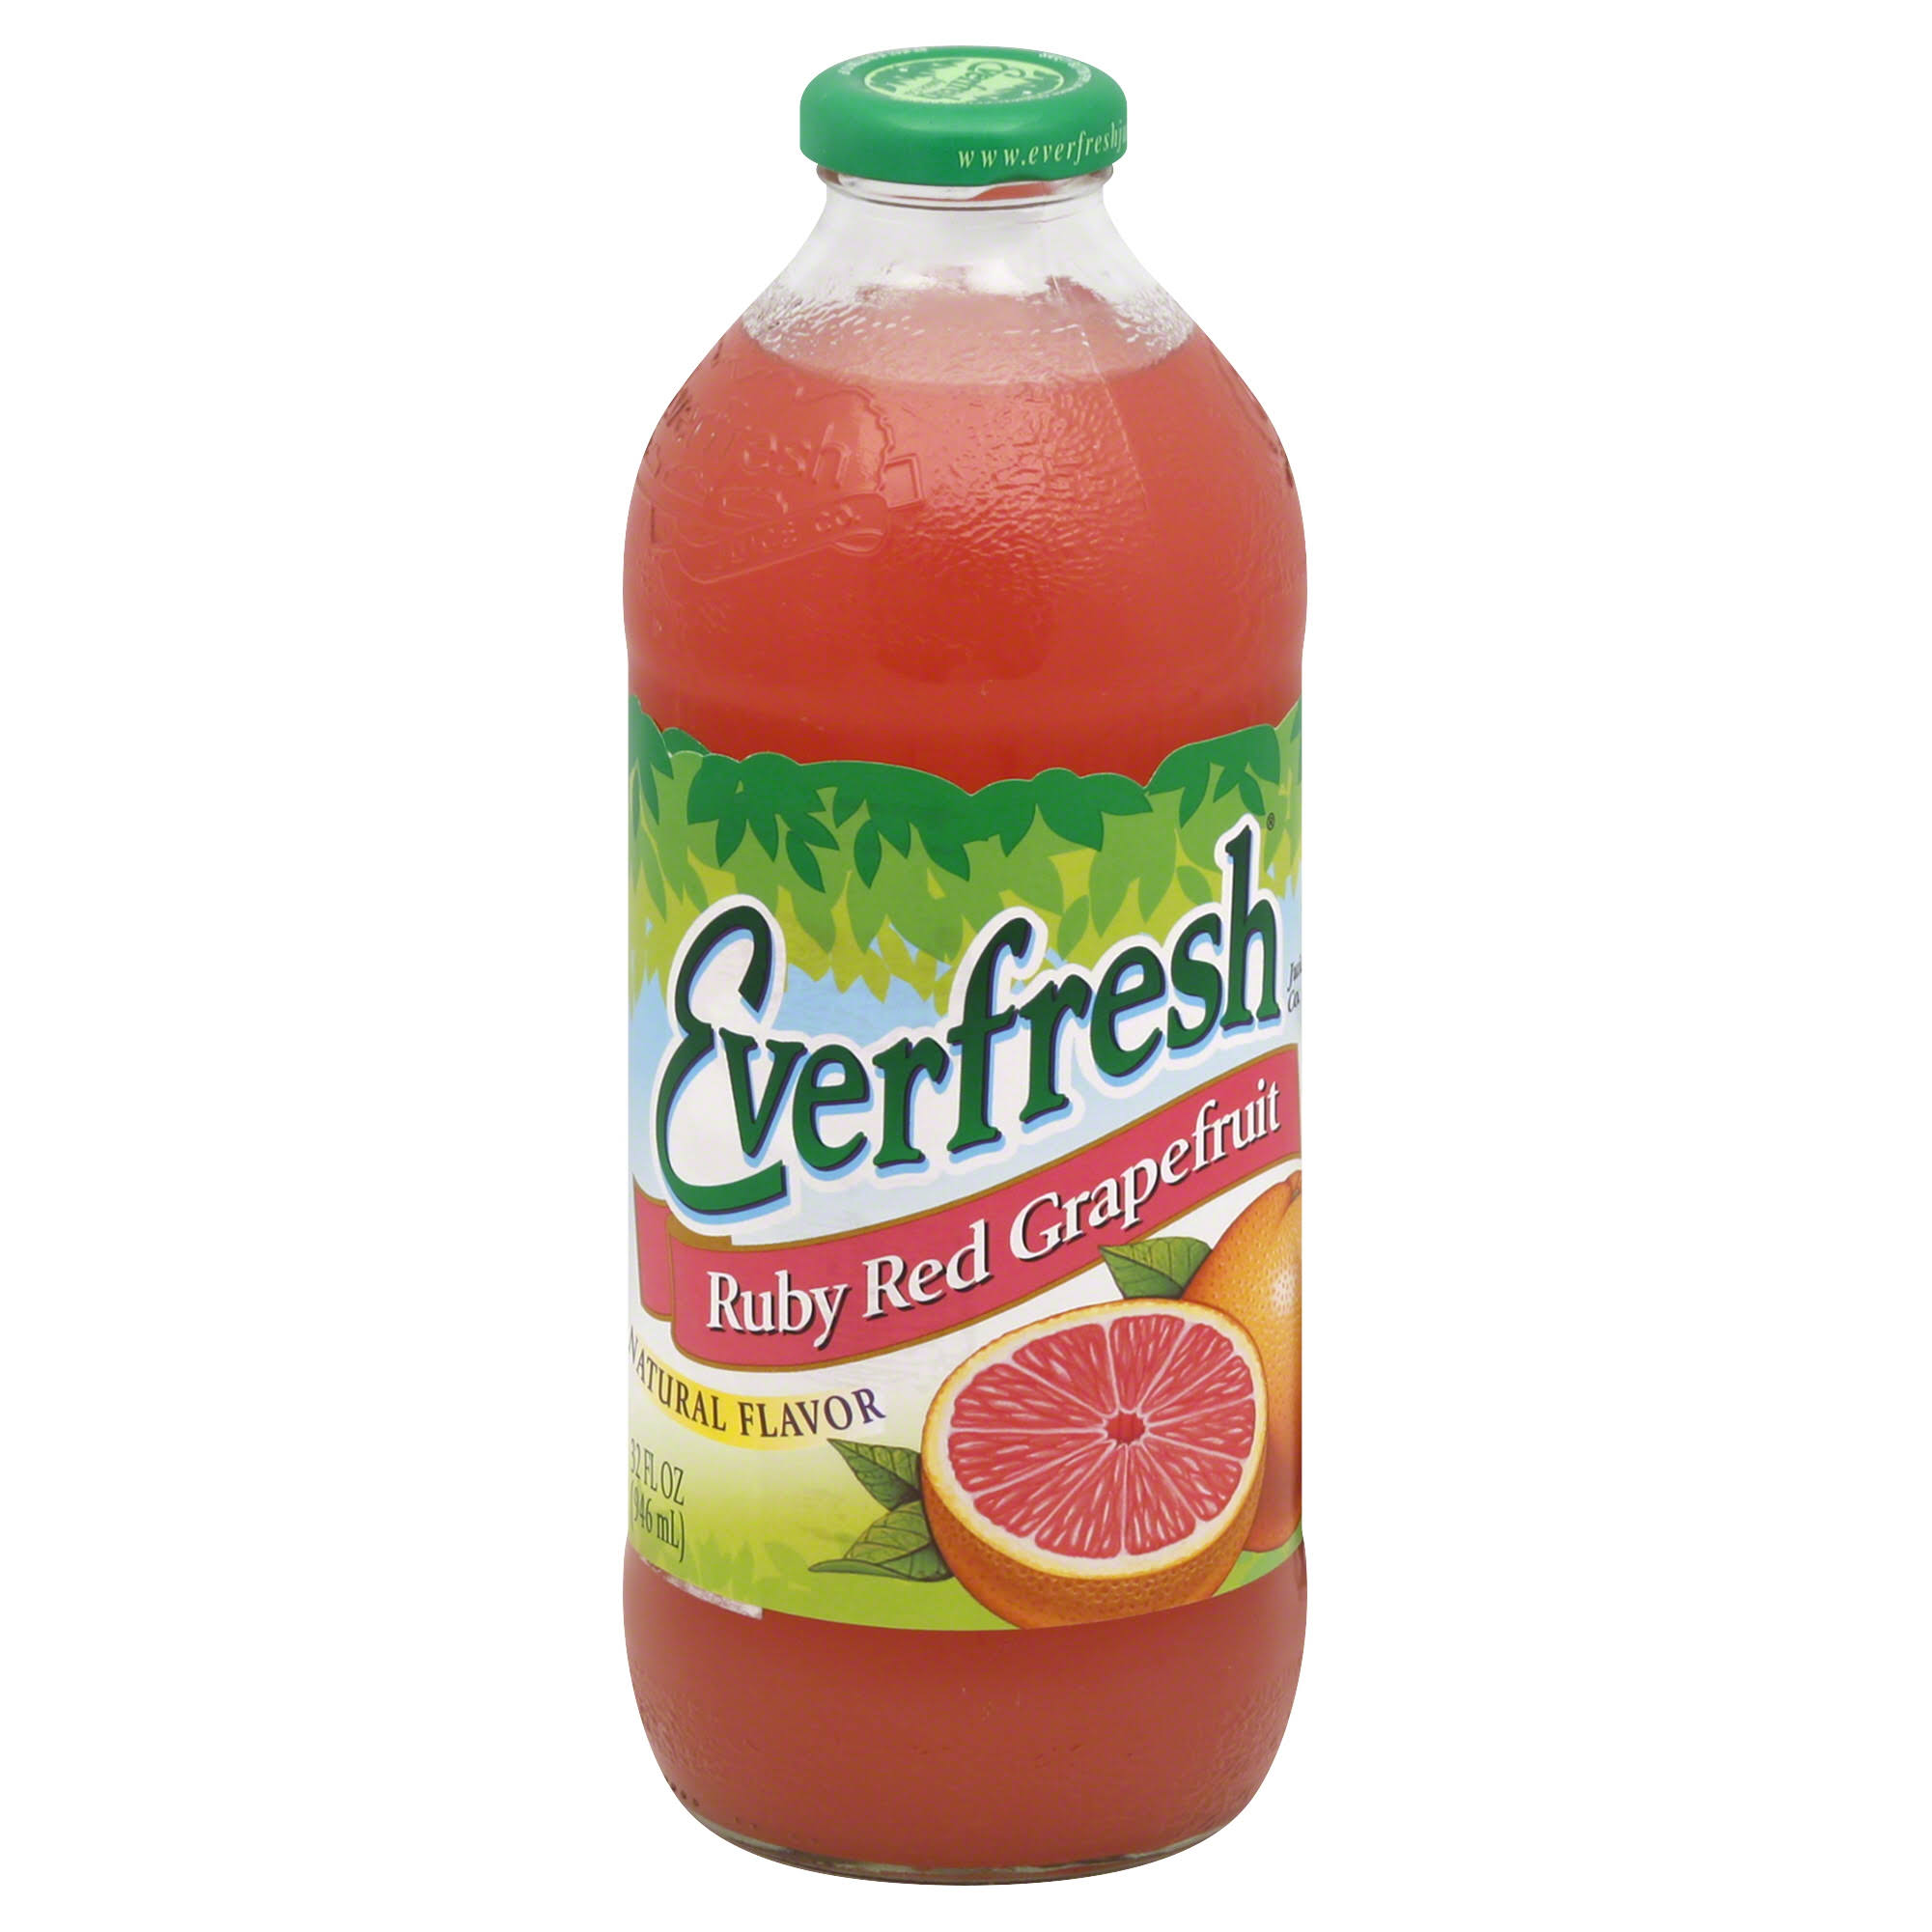 Everfresh Juice Drink Ruby Red Grapefruit - 32Oz